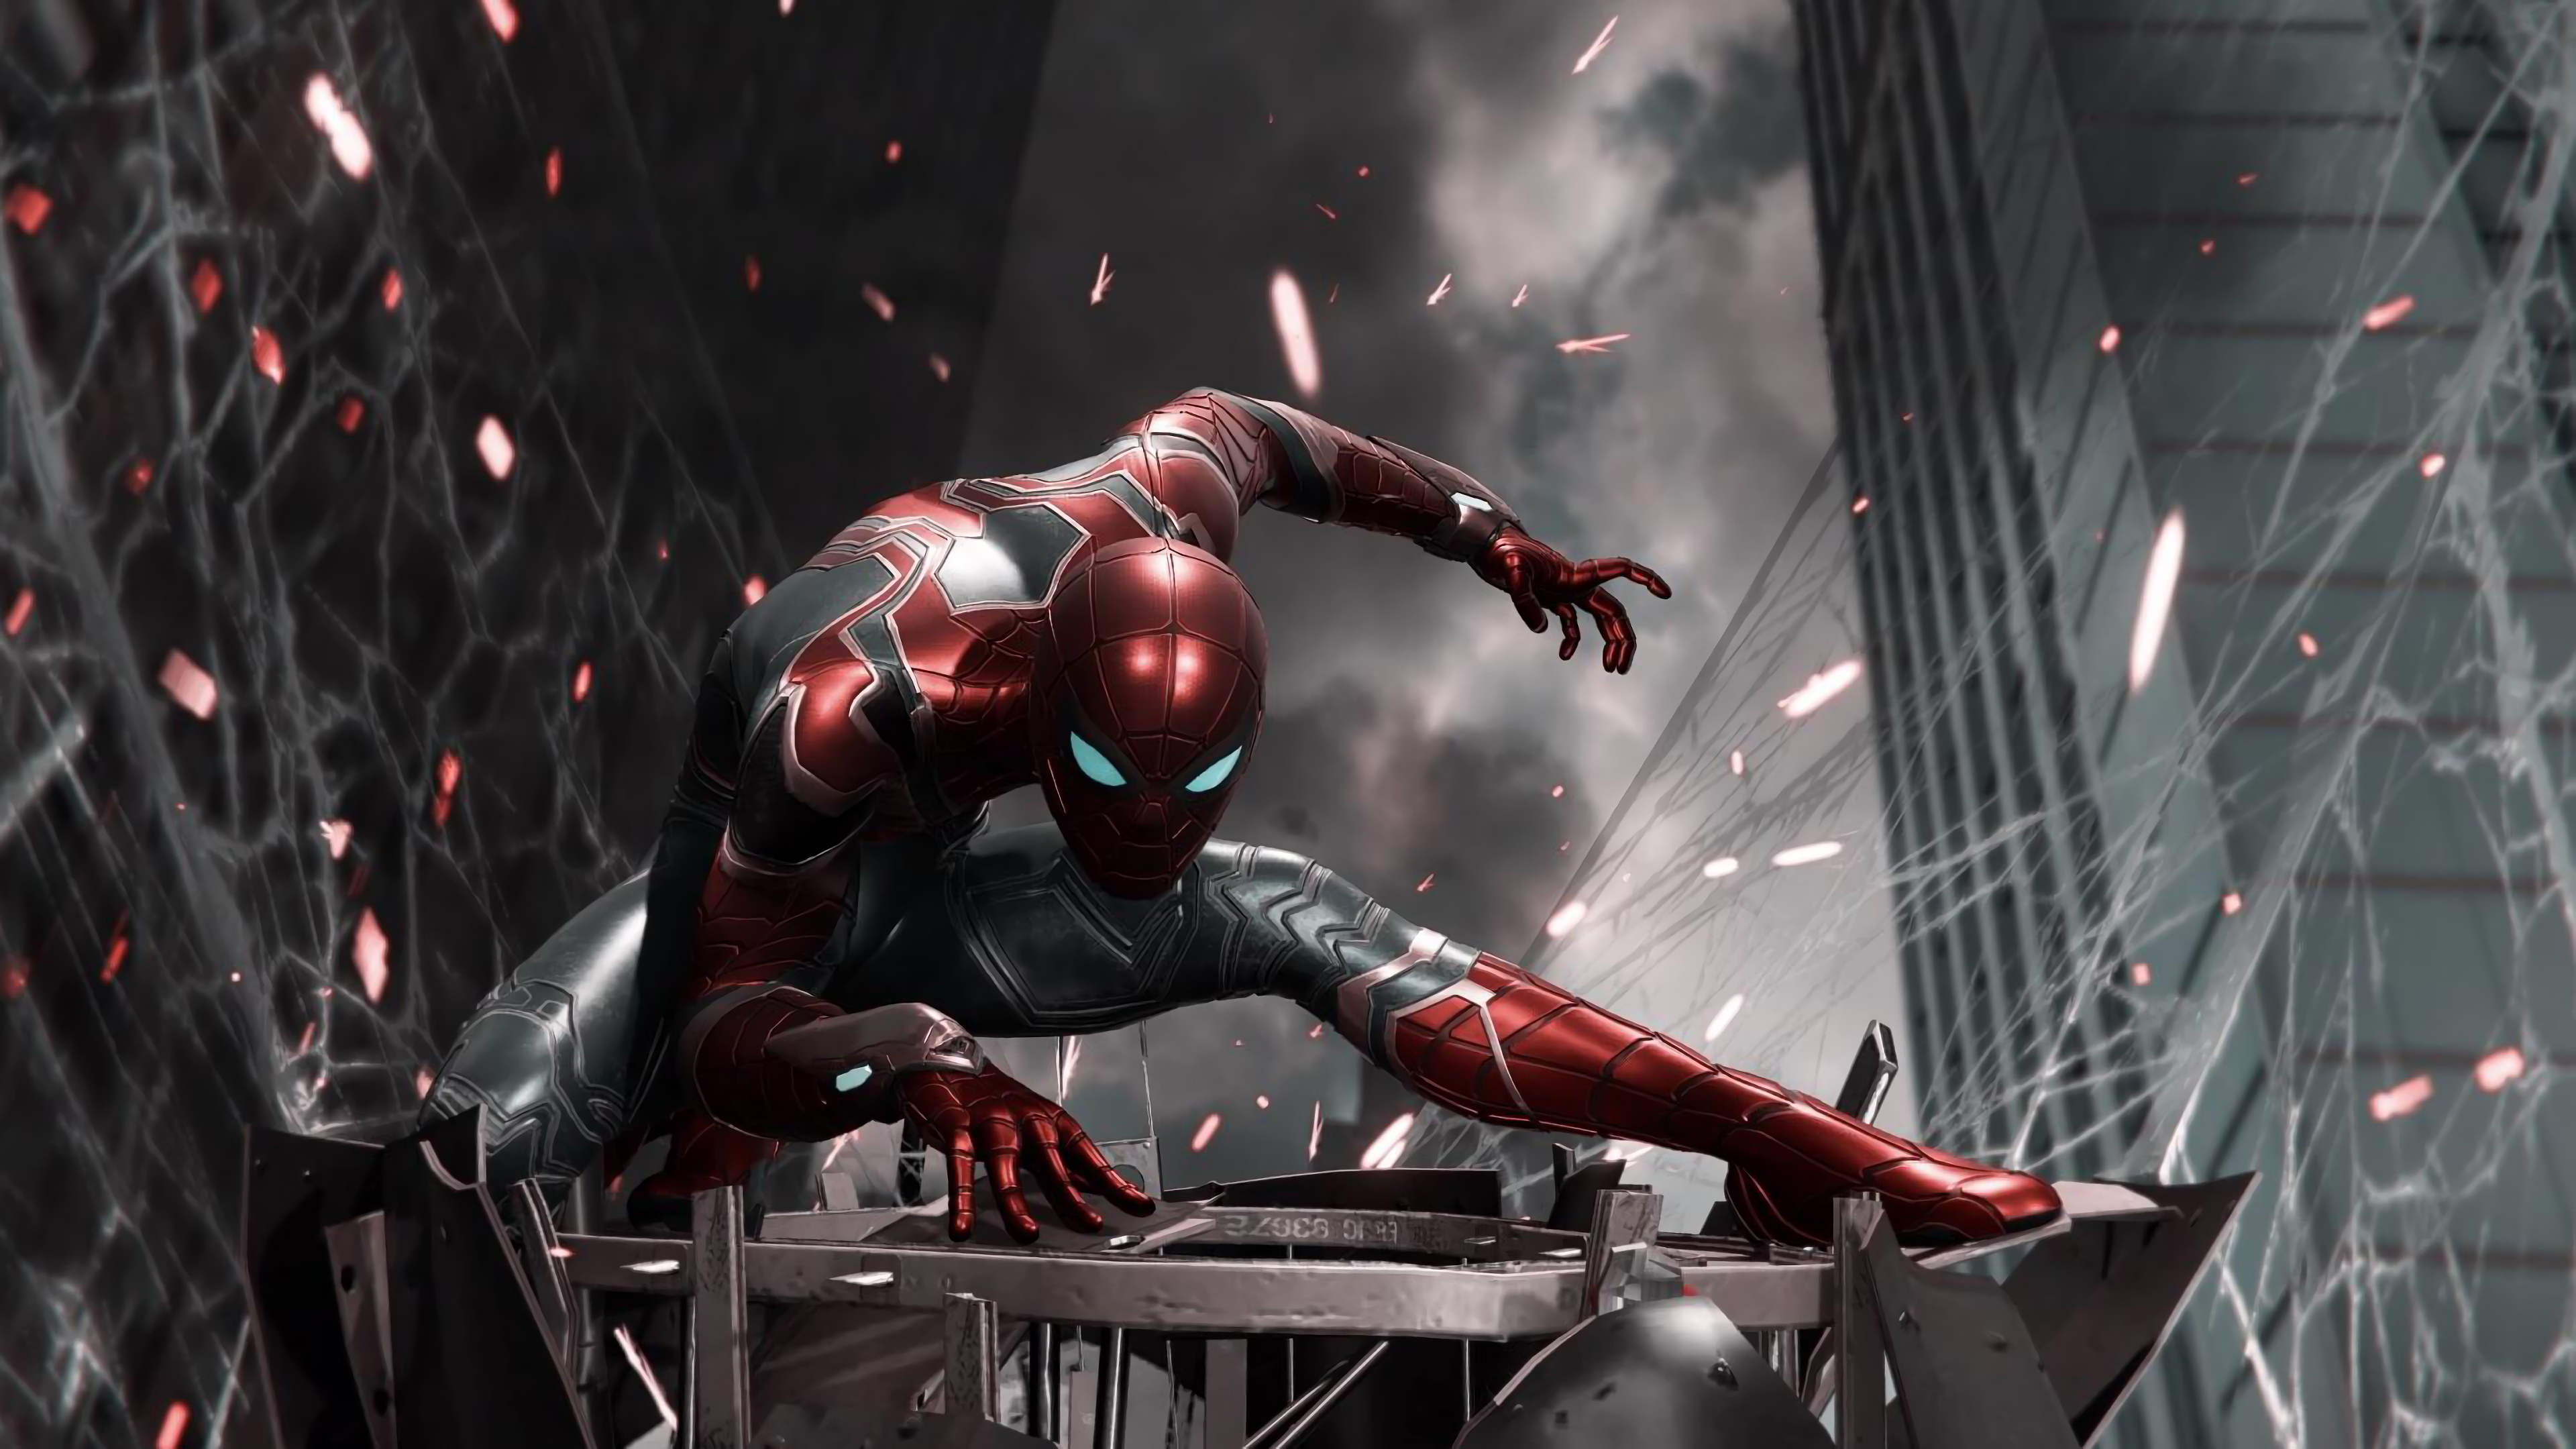 Animals In Suits Wallpaper Spiderman Iron Suit Ps4 Hd Games 4k Wallpapers Images